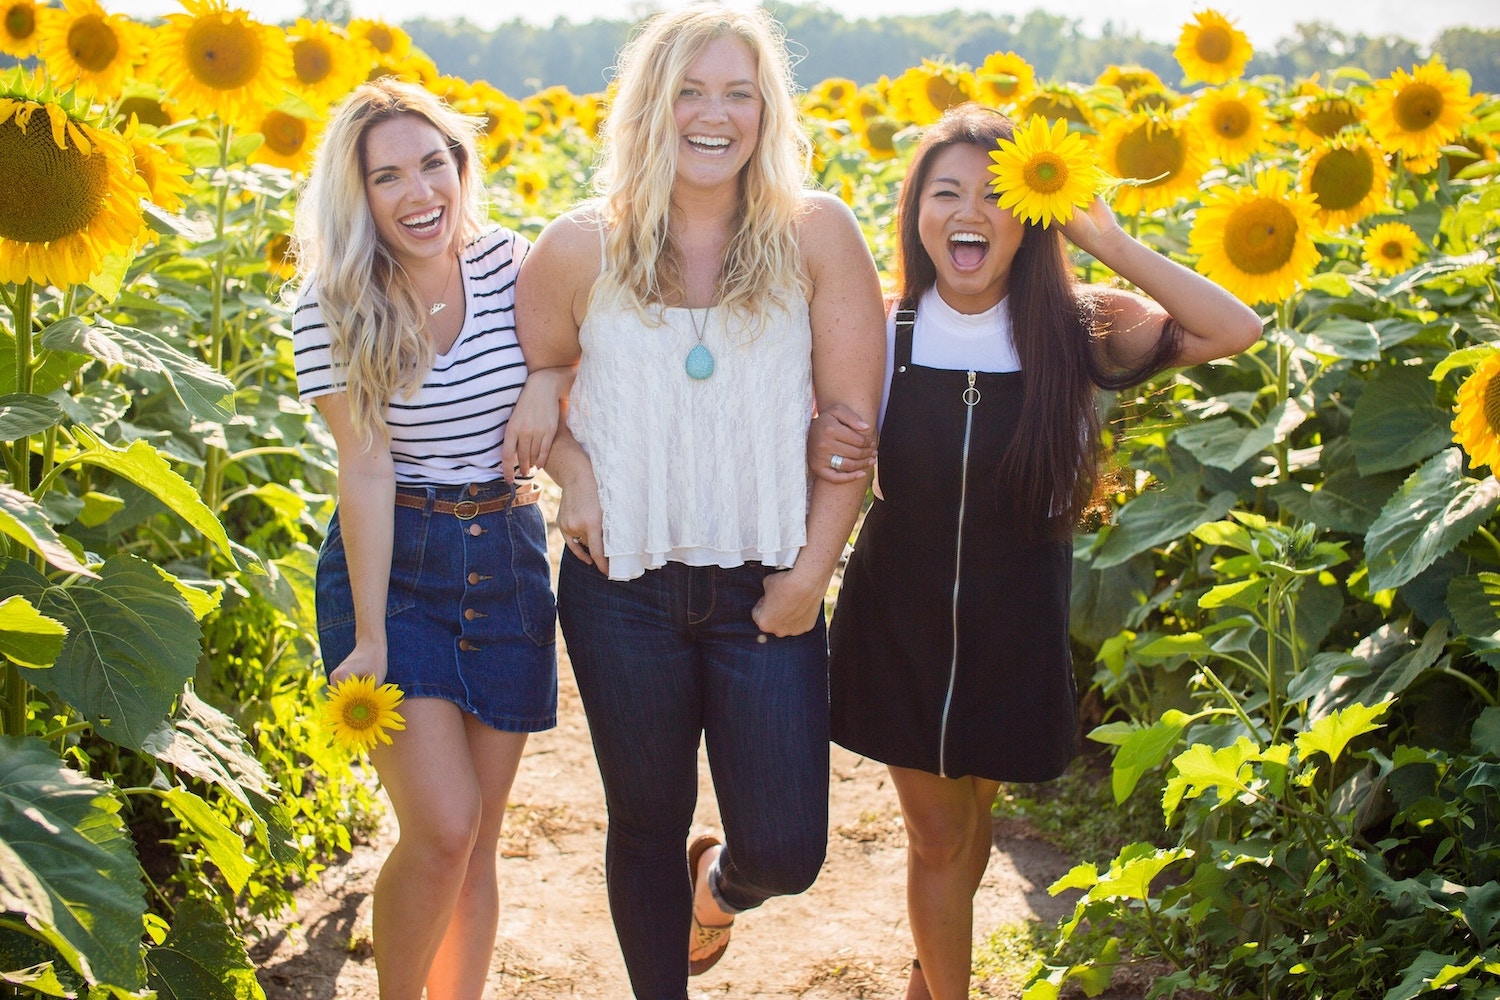 11-bible-verses-about-friendship-three-girls-locked-arms-sunflowers